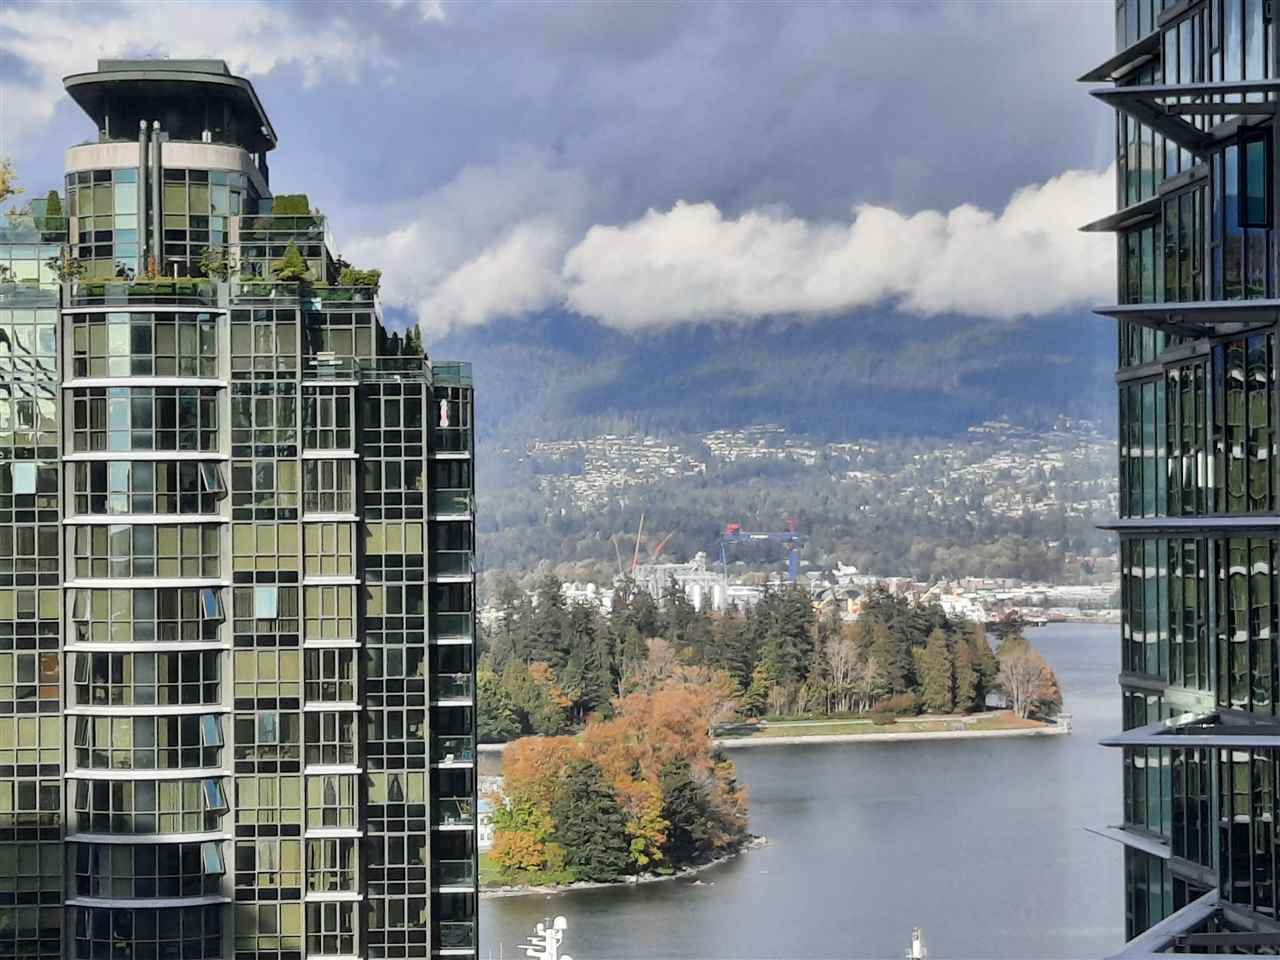 Main Photo: 1803 1331 ALBERNI STREET in Vancouver: West End VW Condo for sale (Vancouver West)  : MLS®# R2508802